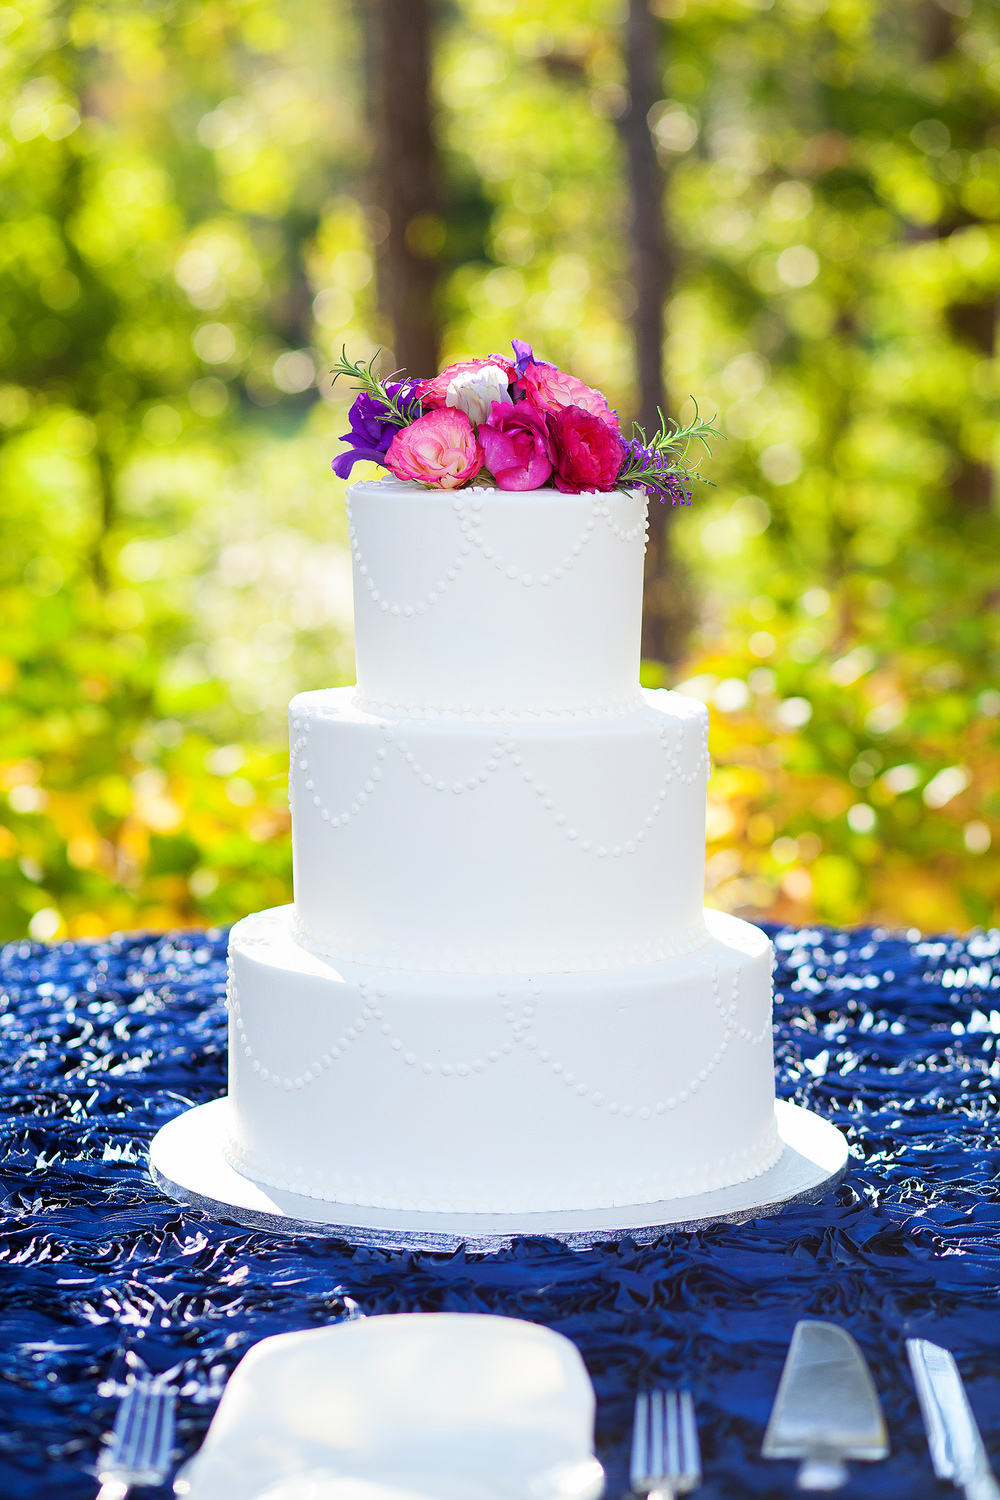 Cake at Brier Creek Country Club